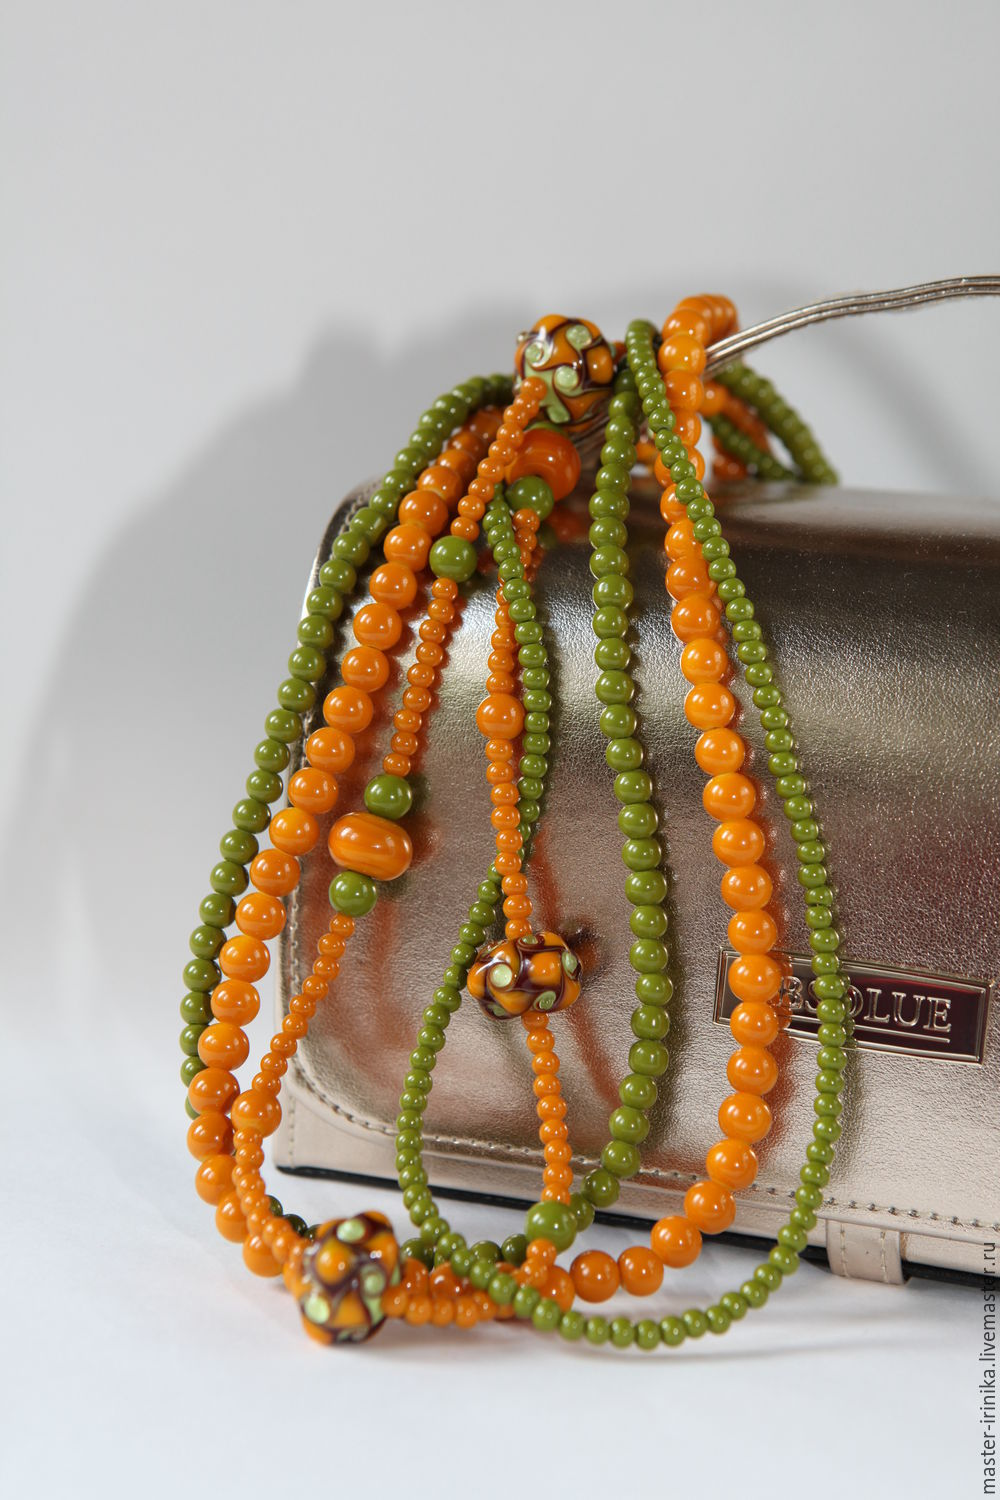 Beads multilayered tale in Forest green and terracotta colours  Iranica. Workshop images by Irina N.  Jewelry crafted  Photo made by the author of the work.